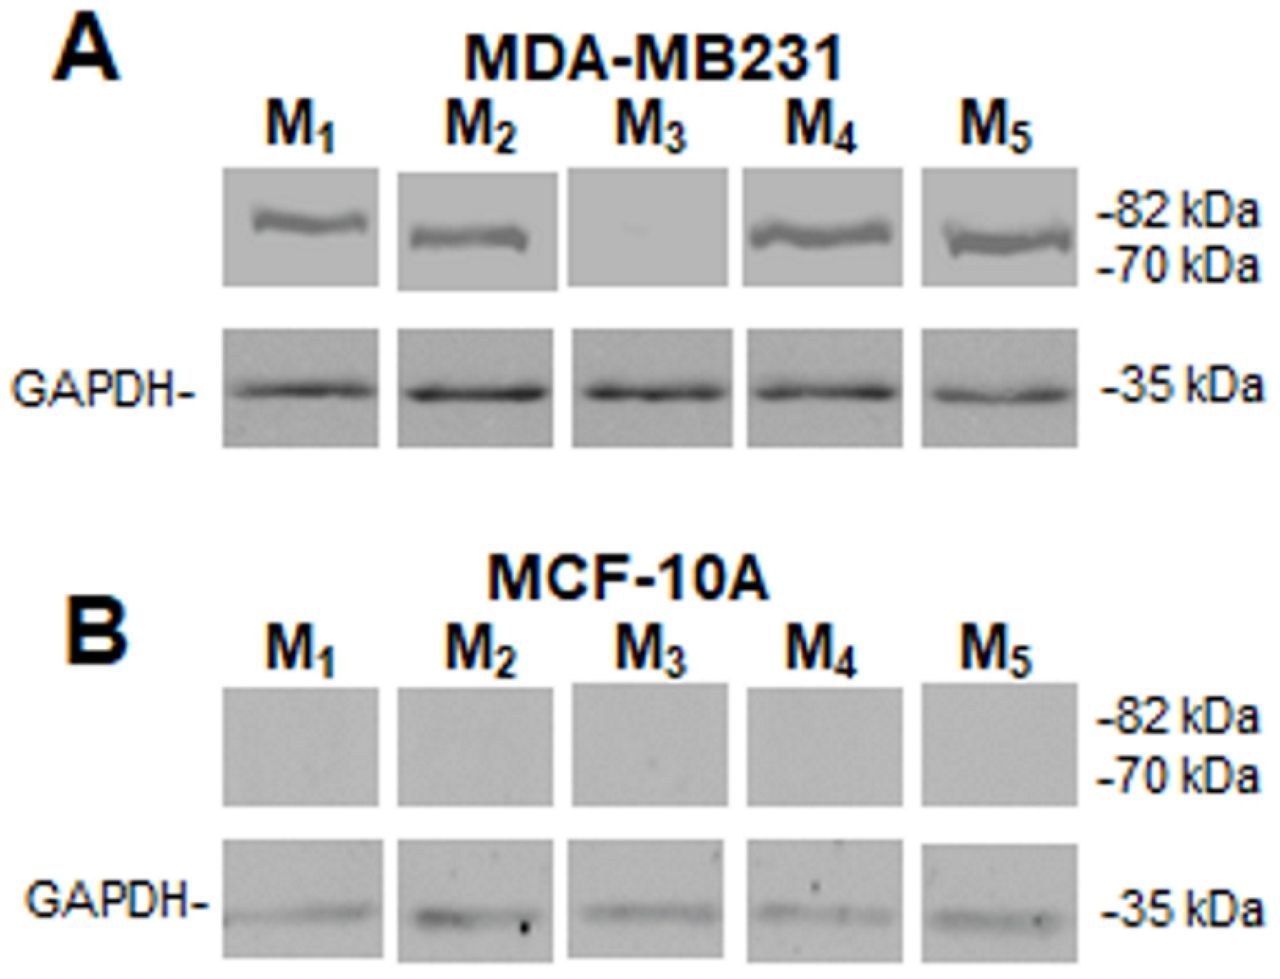 Muscarinic receptors' expression. Western blot assay to detect muscarinic (M) receptor subtypes in A) MDA-MB231cells or B) in MCF-10A cells. Molecular weights are indicated on the right. The expression of glyceraldehyde 3-phosphate dehydrogenase (GAPDH) protein was used as loading control. One representative experiment of 3 is shown.